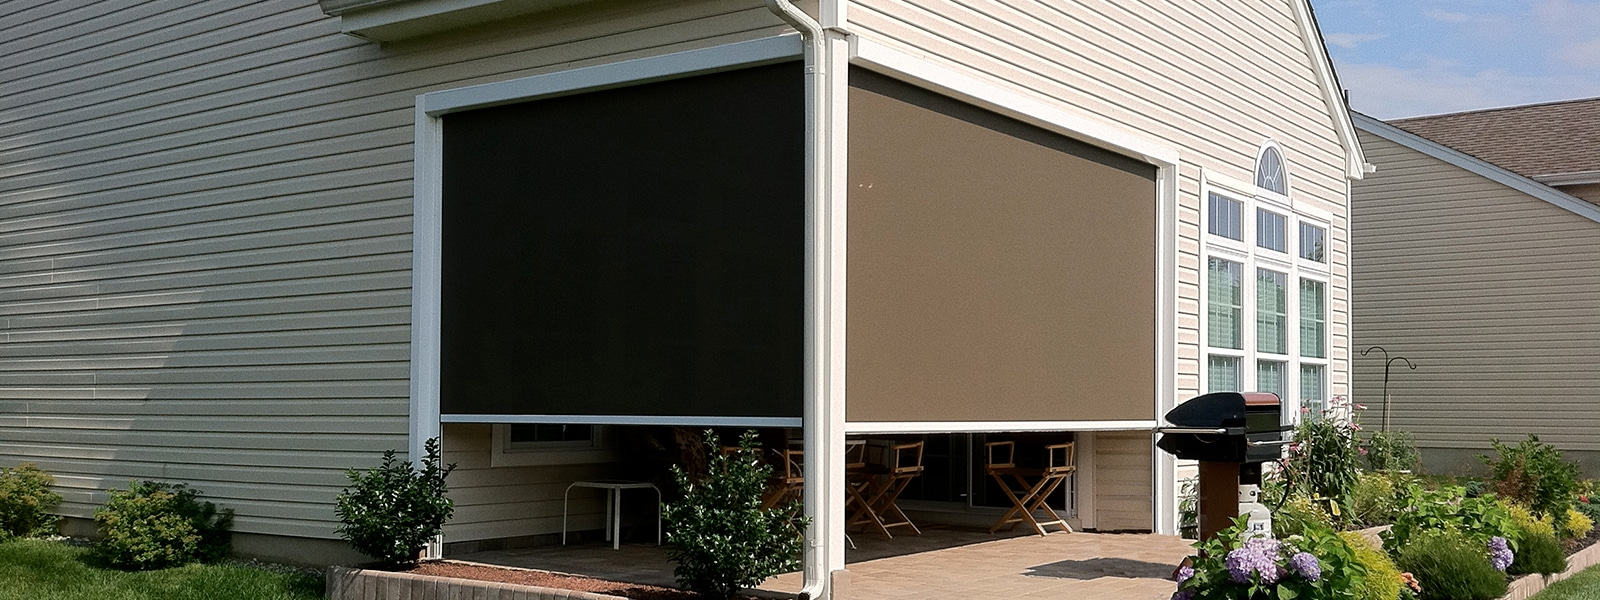 Exterior solar shades south carolina for Exterior window shade